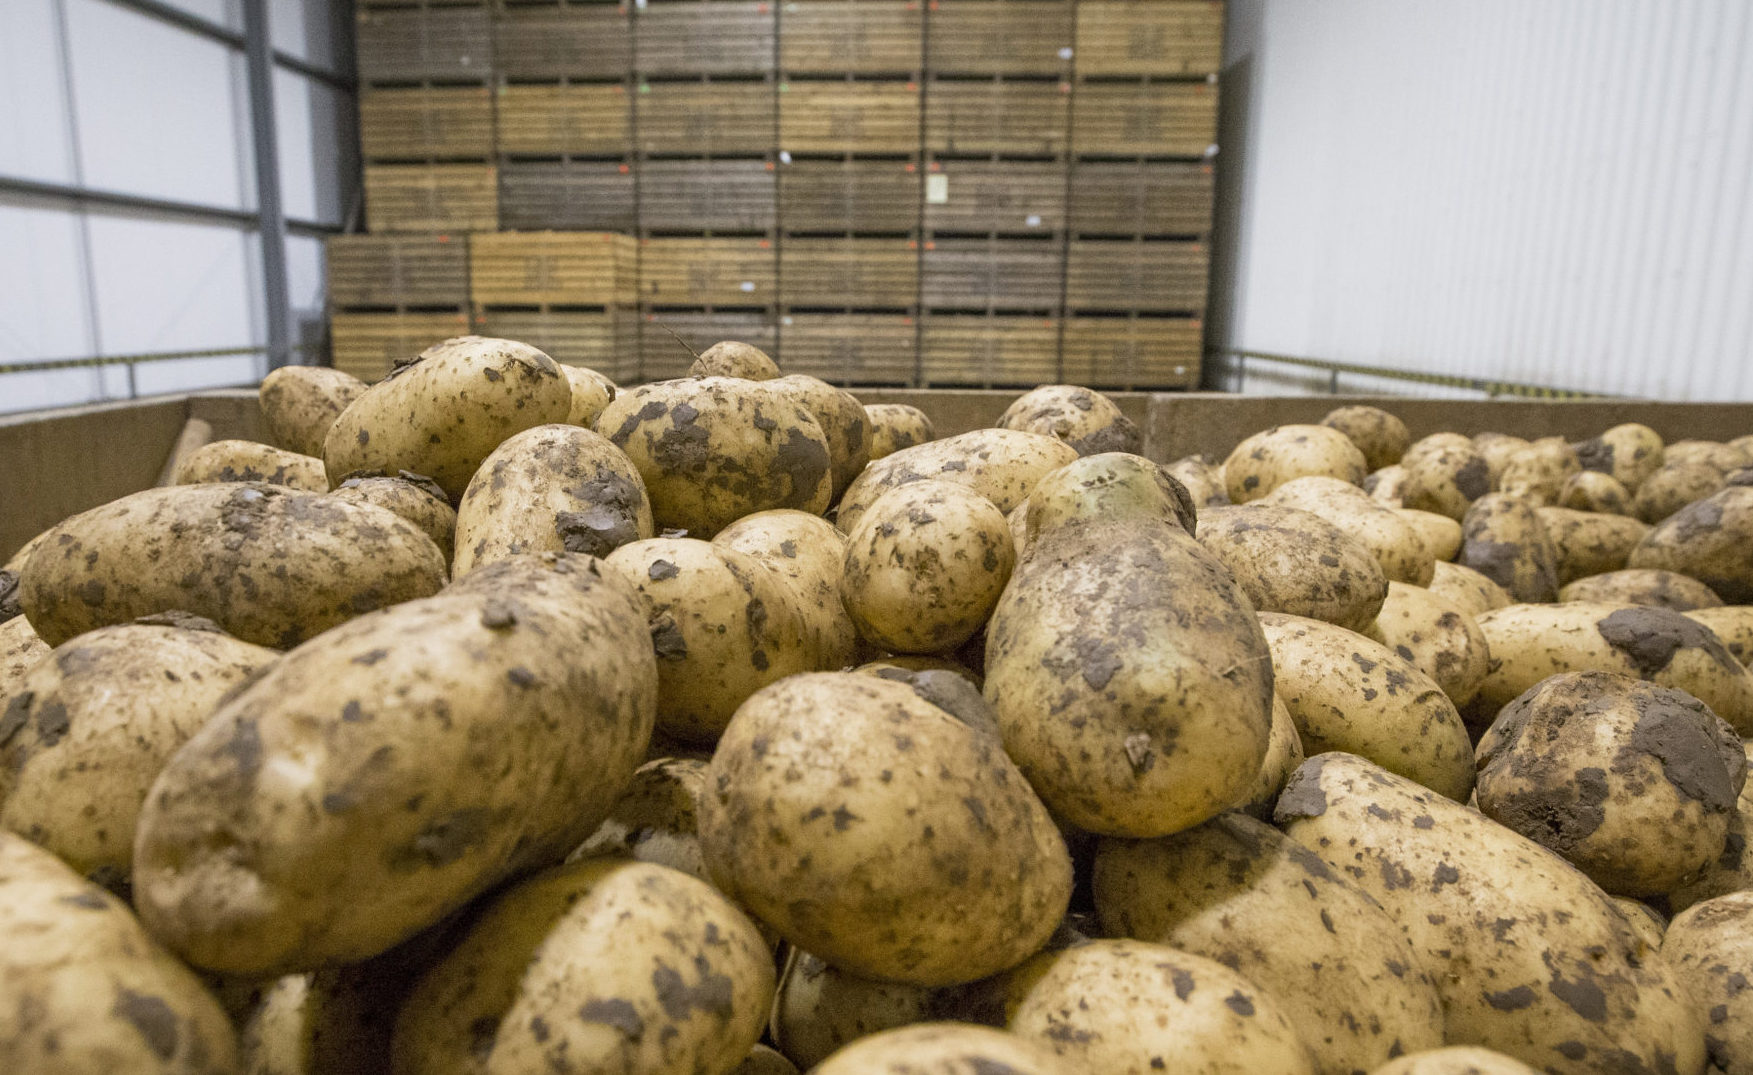 The meeting is open to potato growers and store managers from both the seed and ware sectors.